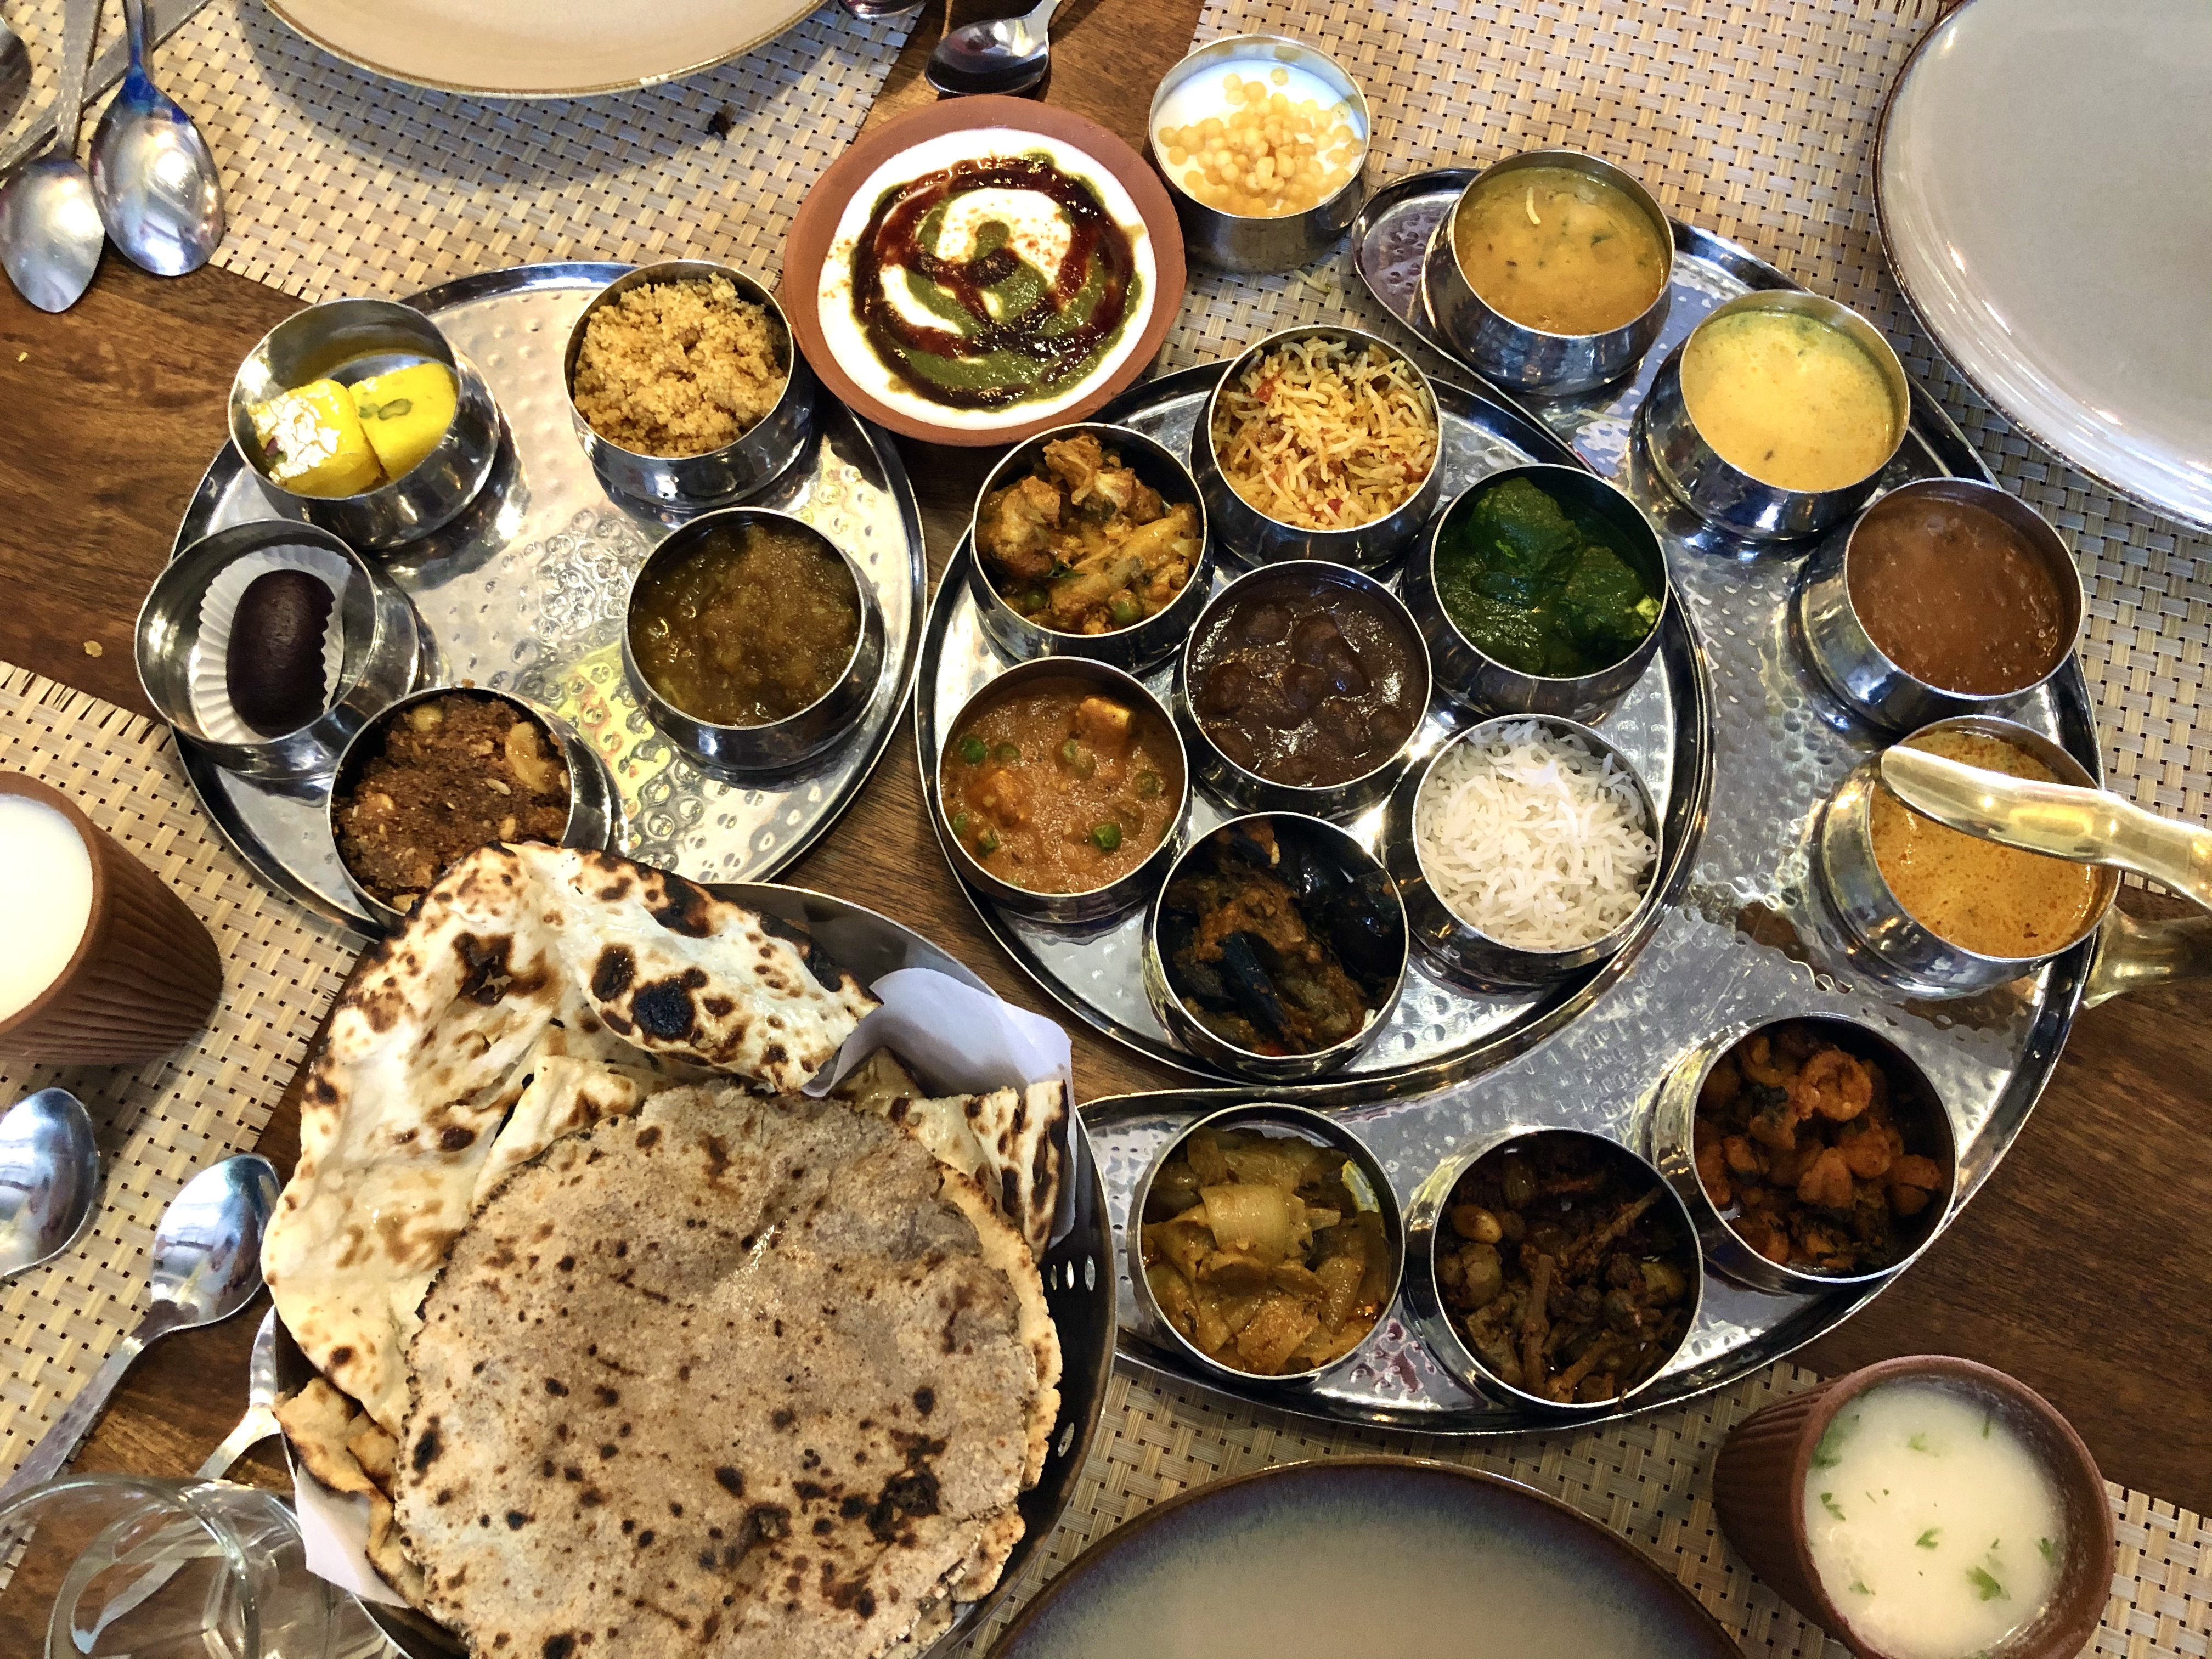 Rasoda-Two States On A Plate!